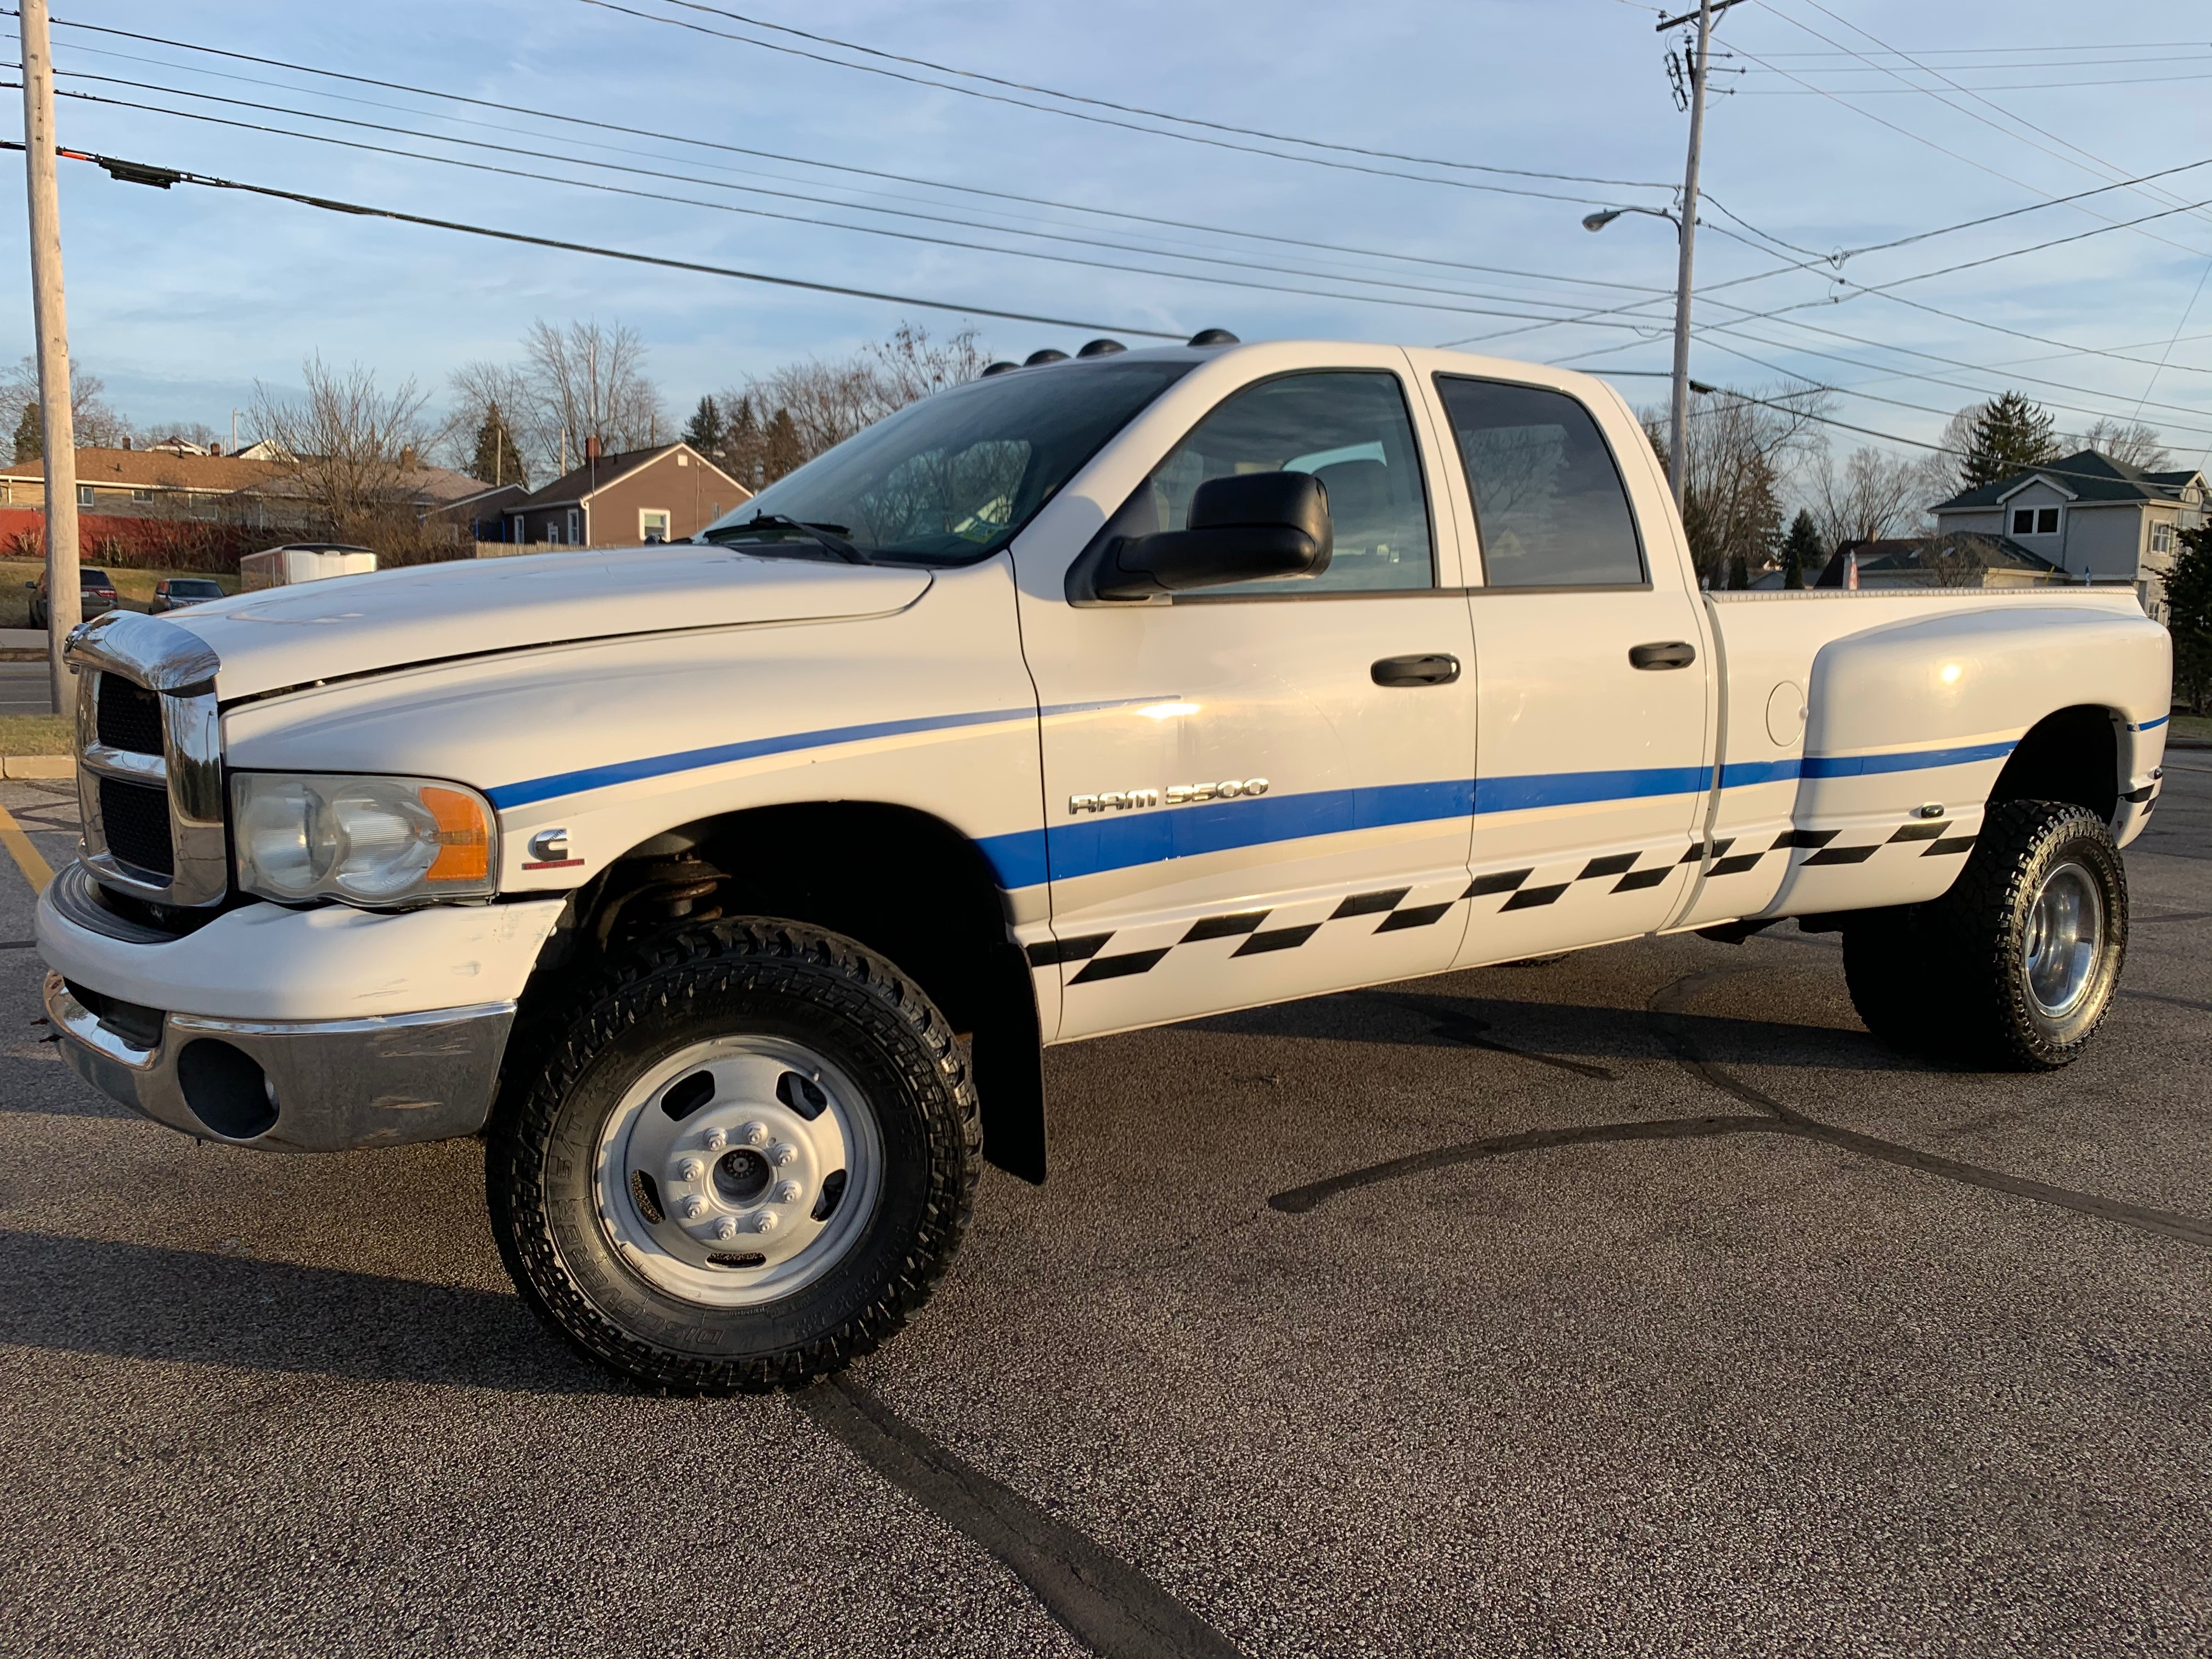 2004 Dodge Ram 3500 Diesel 5 9 Cummins 4x4 Quad Cab Dually 199k Long Bed Clean No Rust Online Auto Warehouse Llc Dealership In Akron